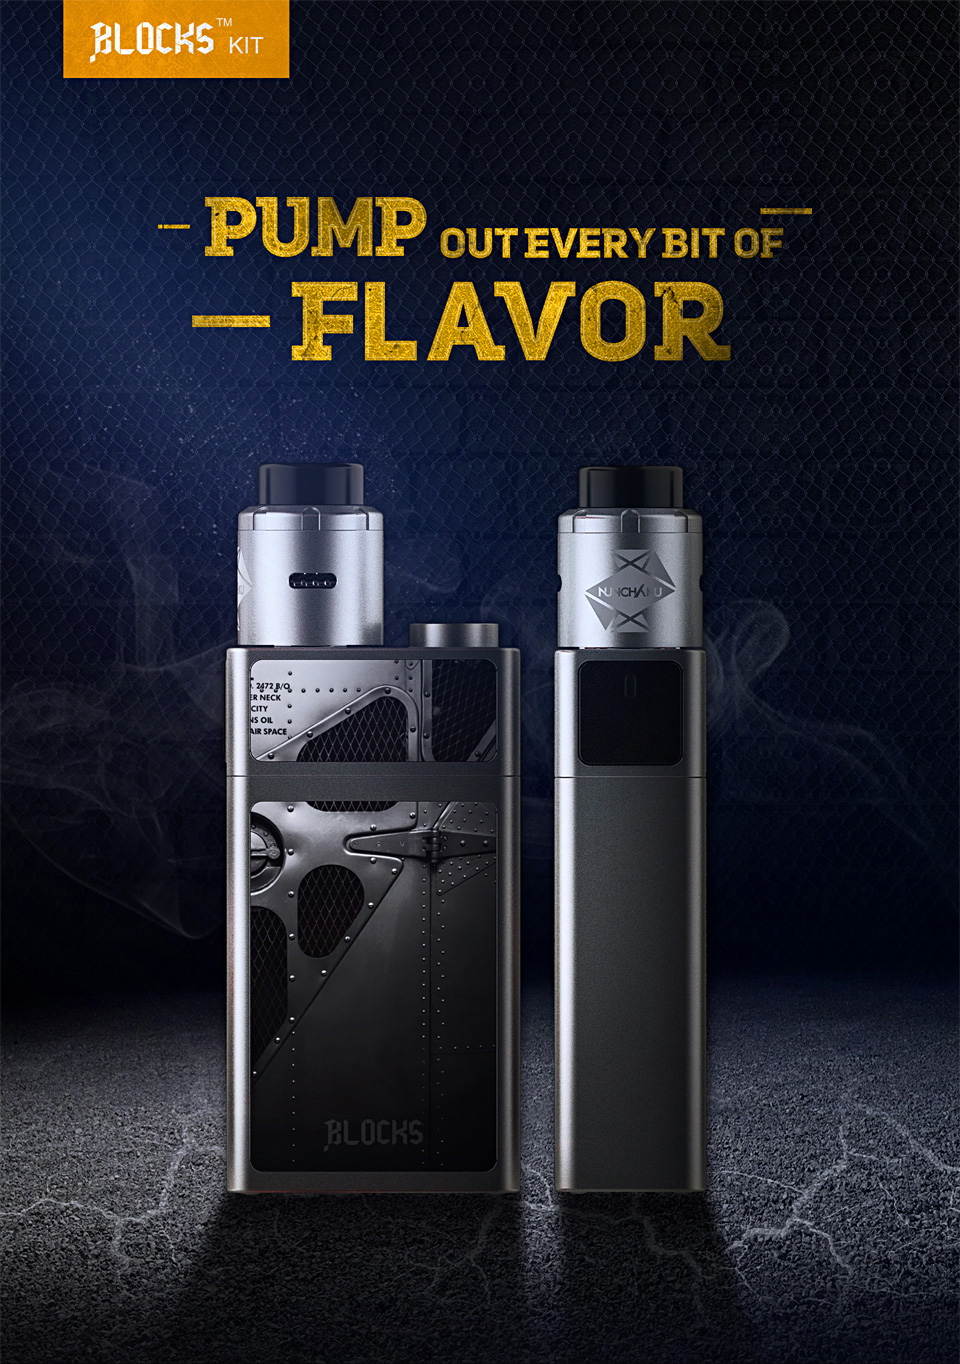 UWELL BLOCKS Vape Kit with Squonk Mod and NUNCHAKU RDA